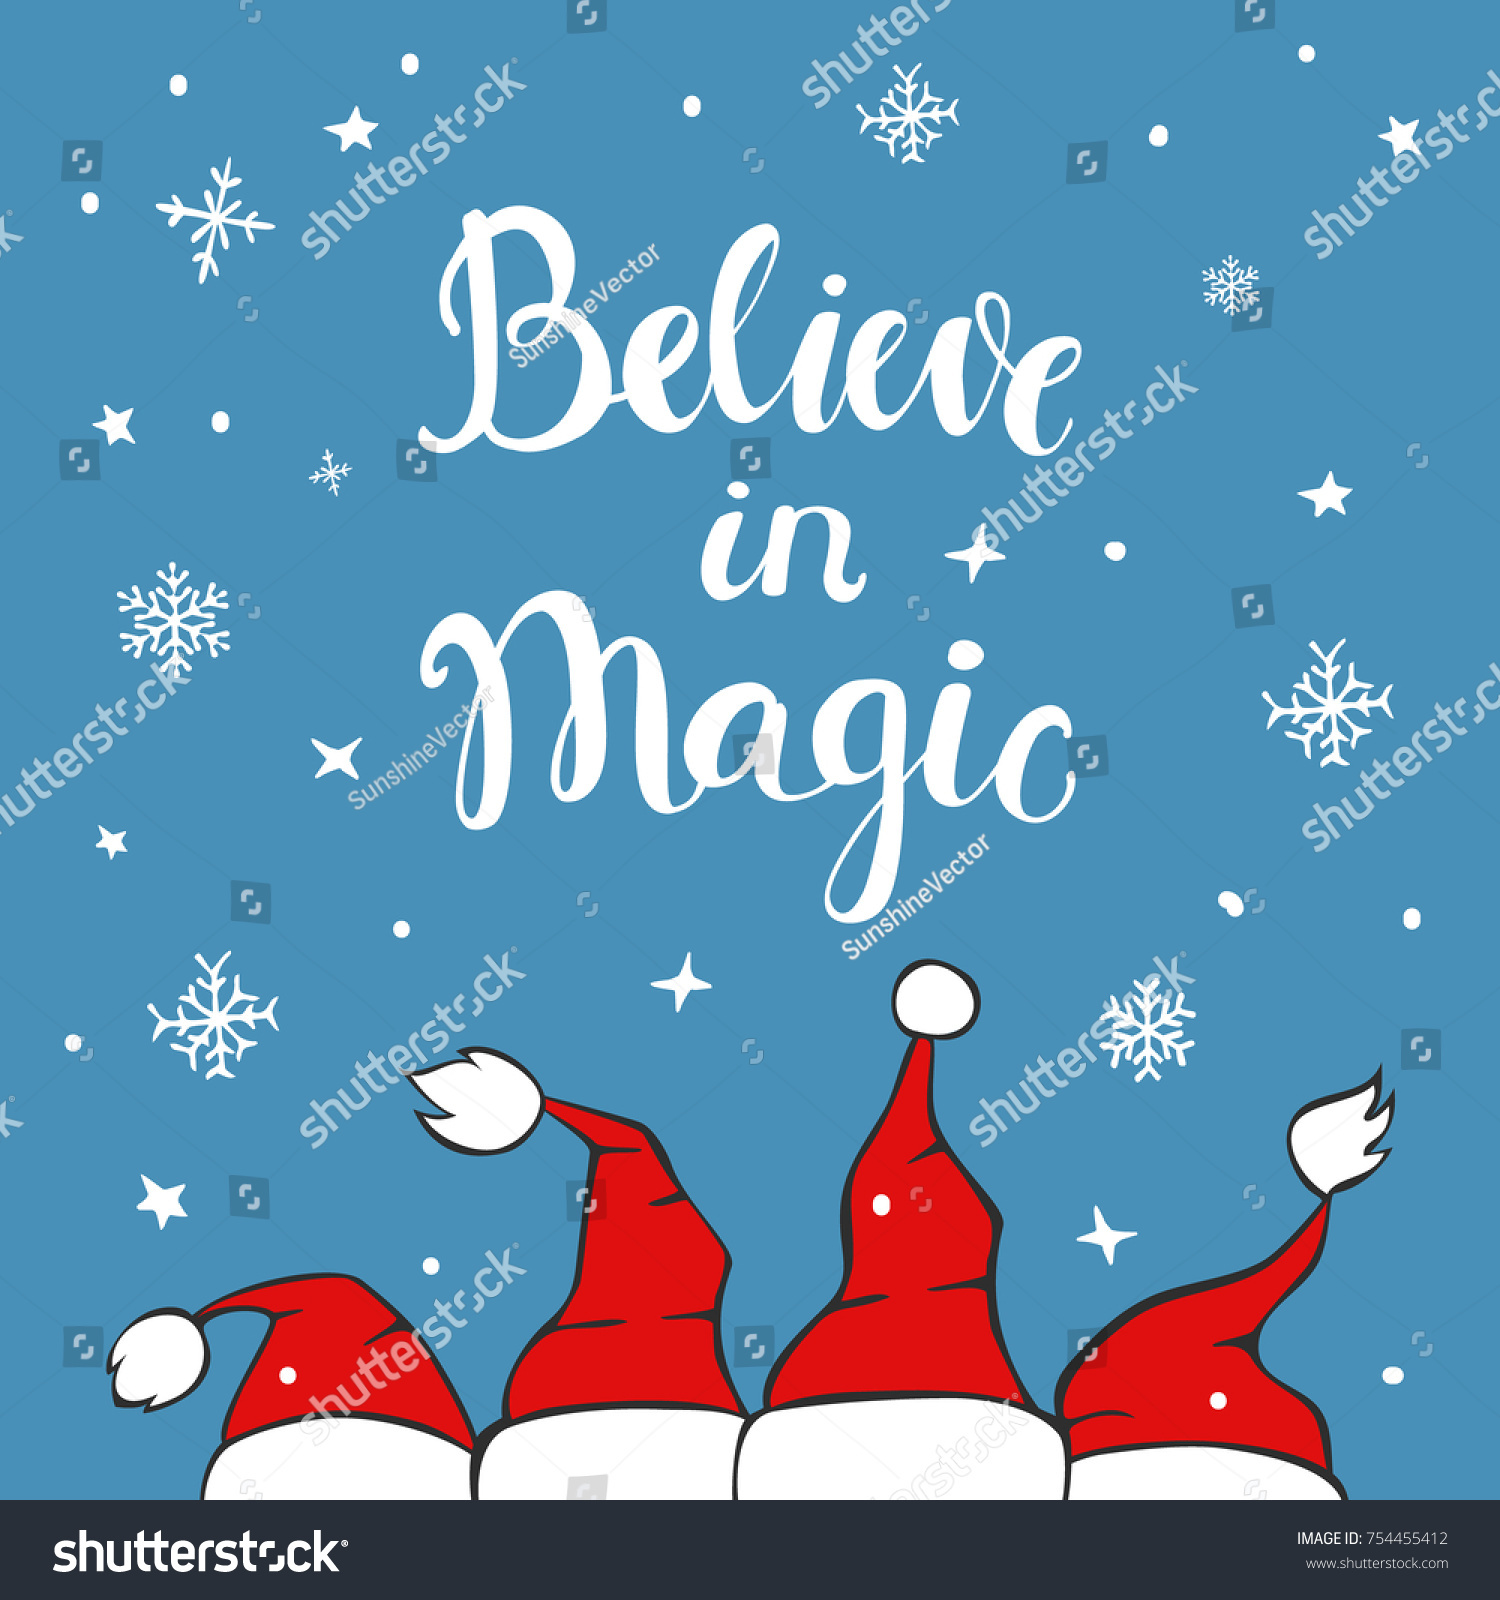 Believe magic xmas background greeting card stock vector 754455412 believe in magic xmas background greeting card with chrostmas santa claus hats on blue texture with m4hsunfo